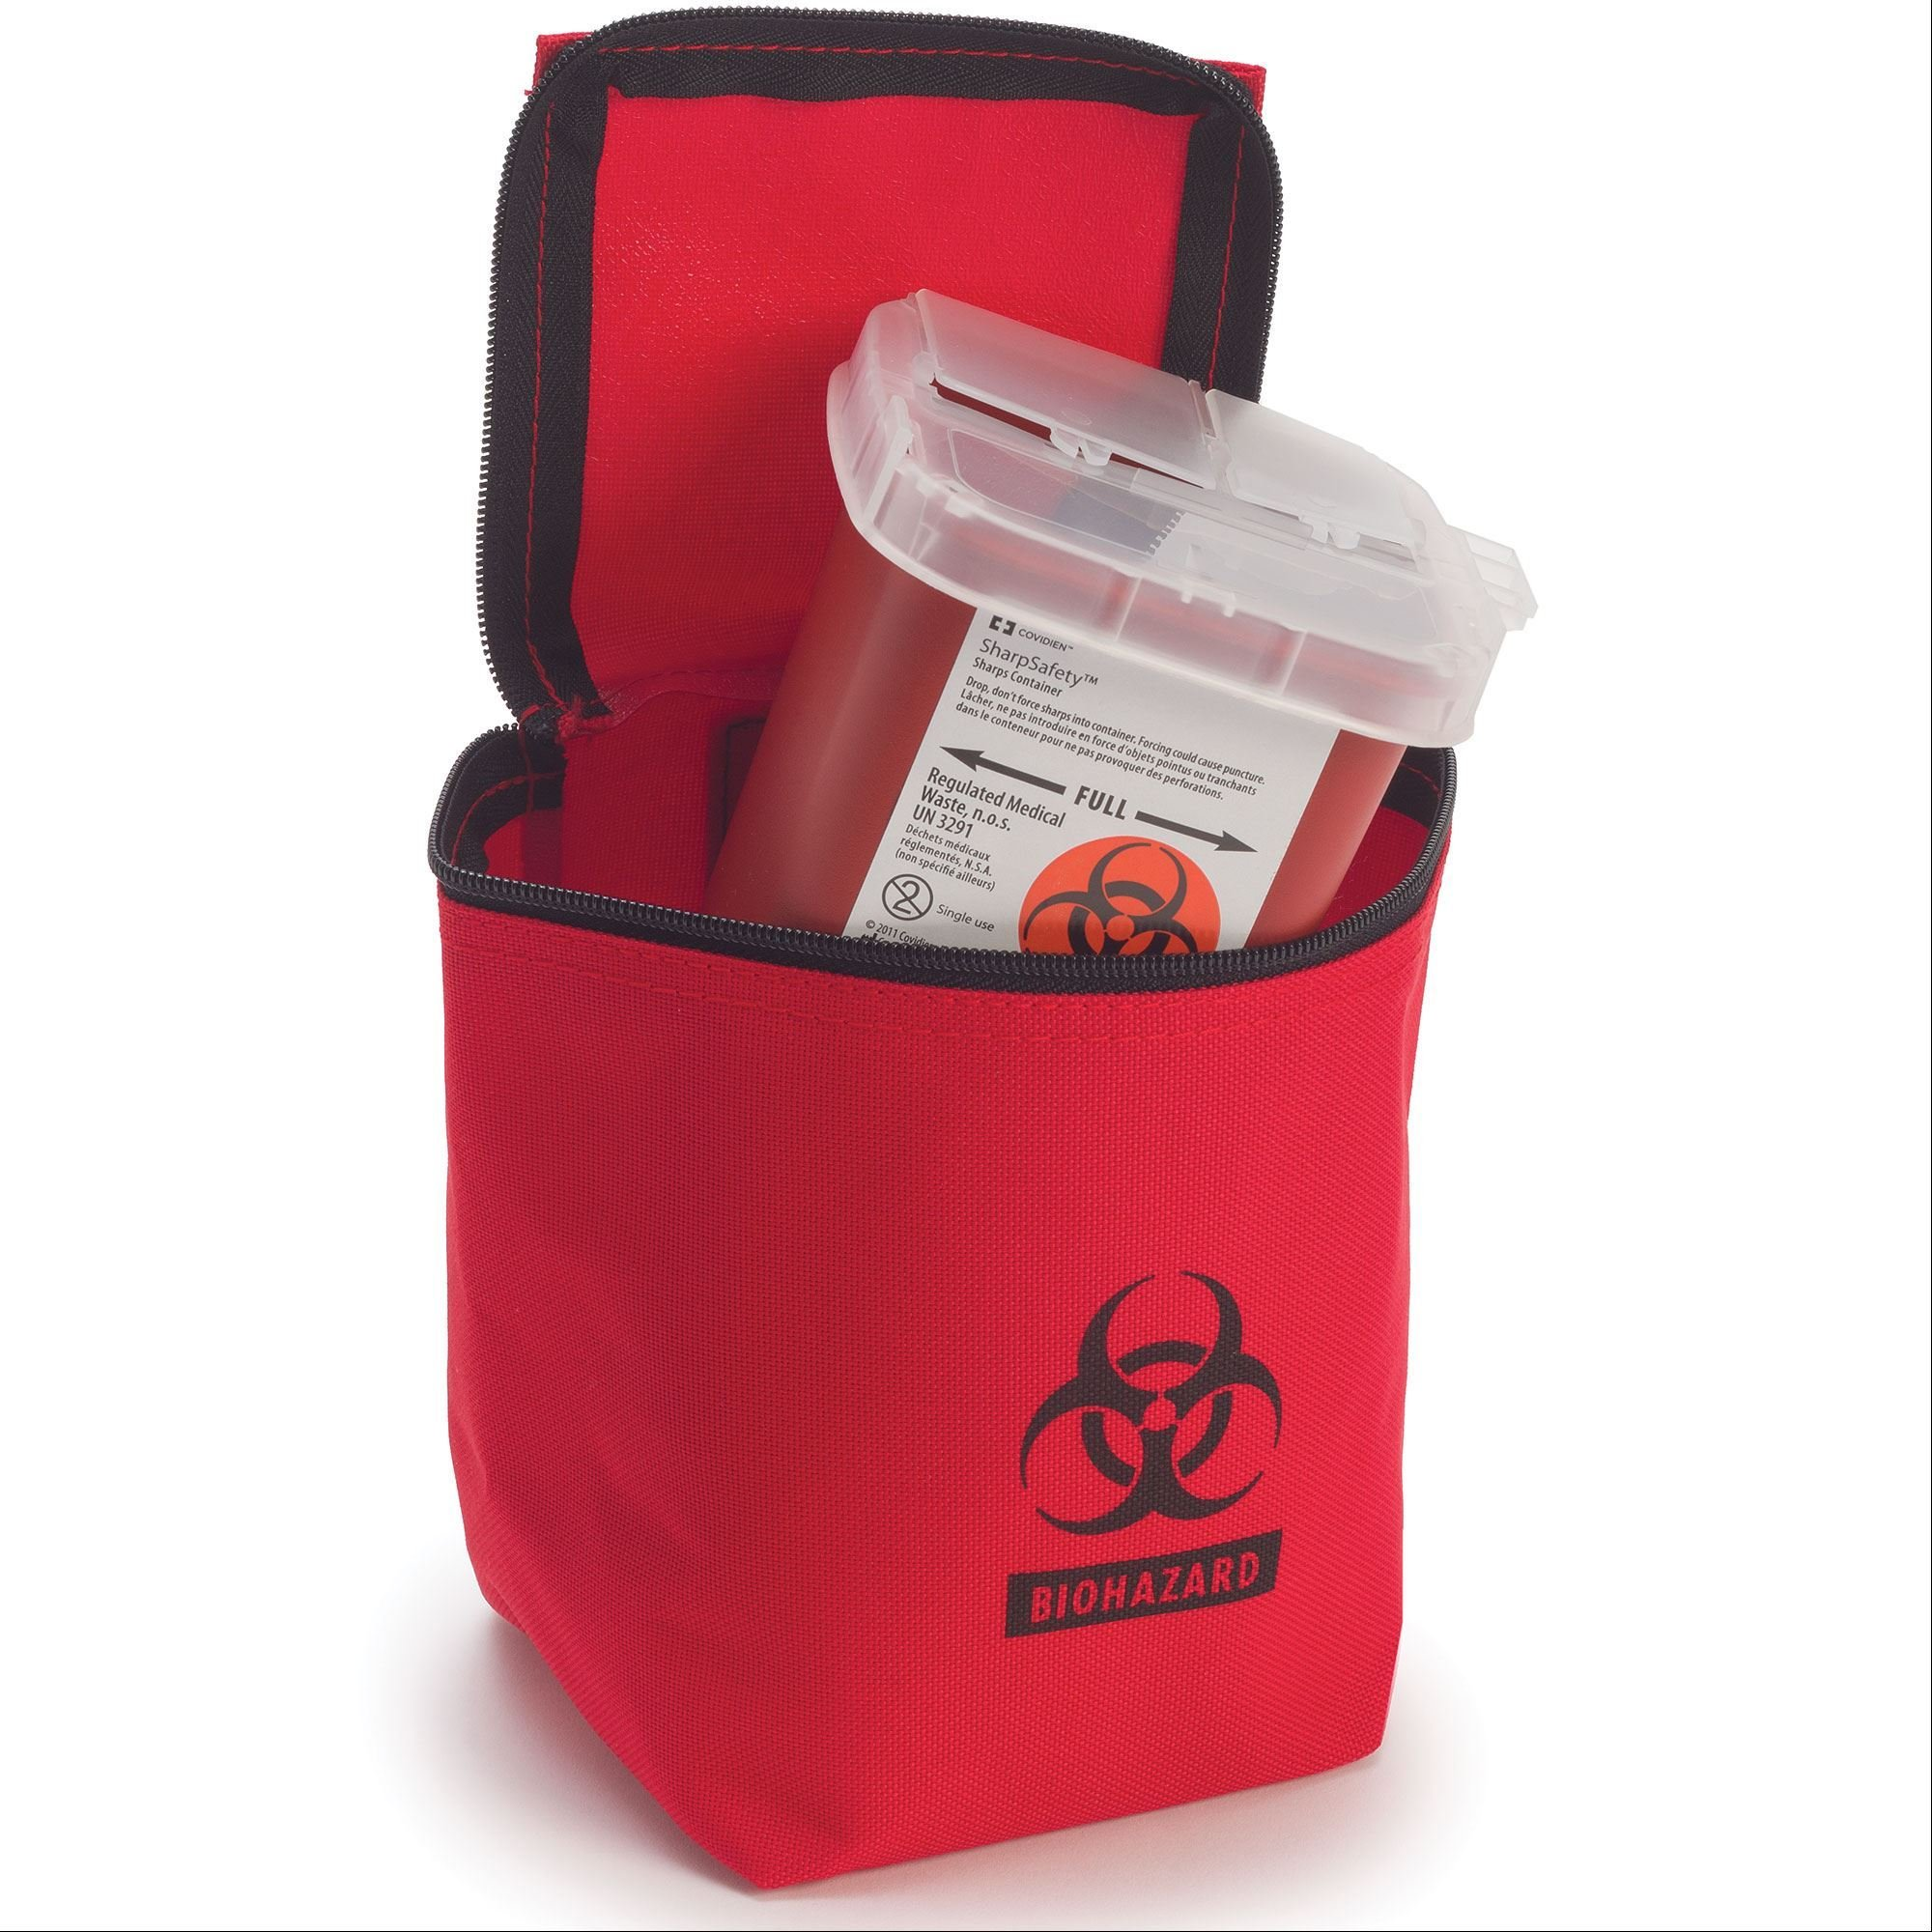 Hopkins Zippered Transport Pouch with Sharps Container by Hopkins Medical Products